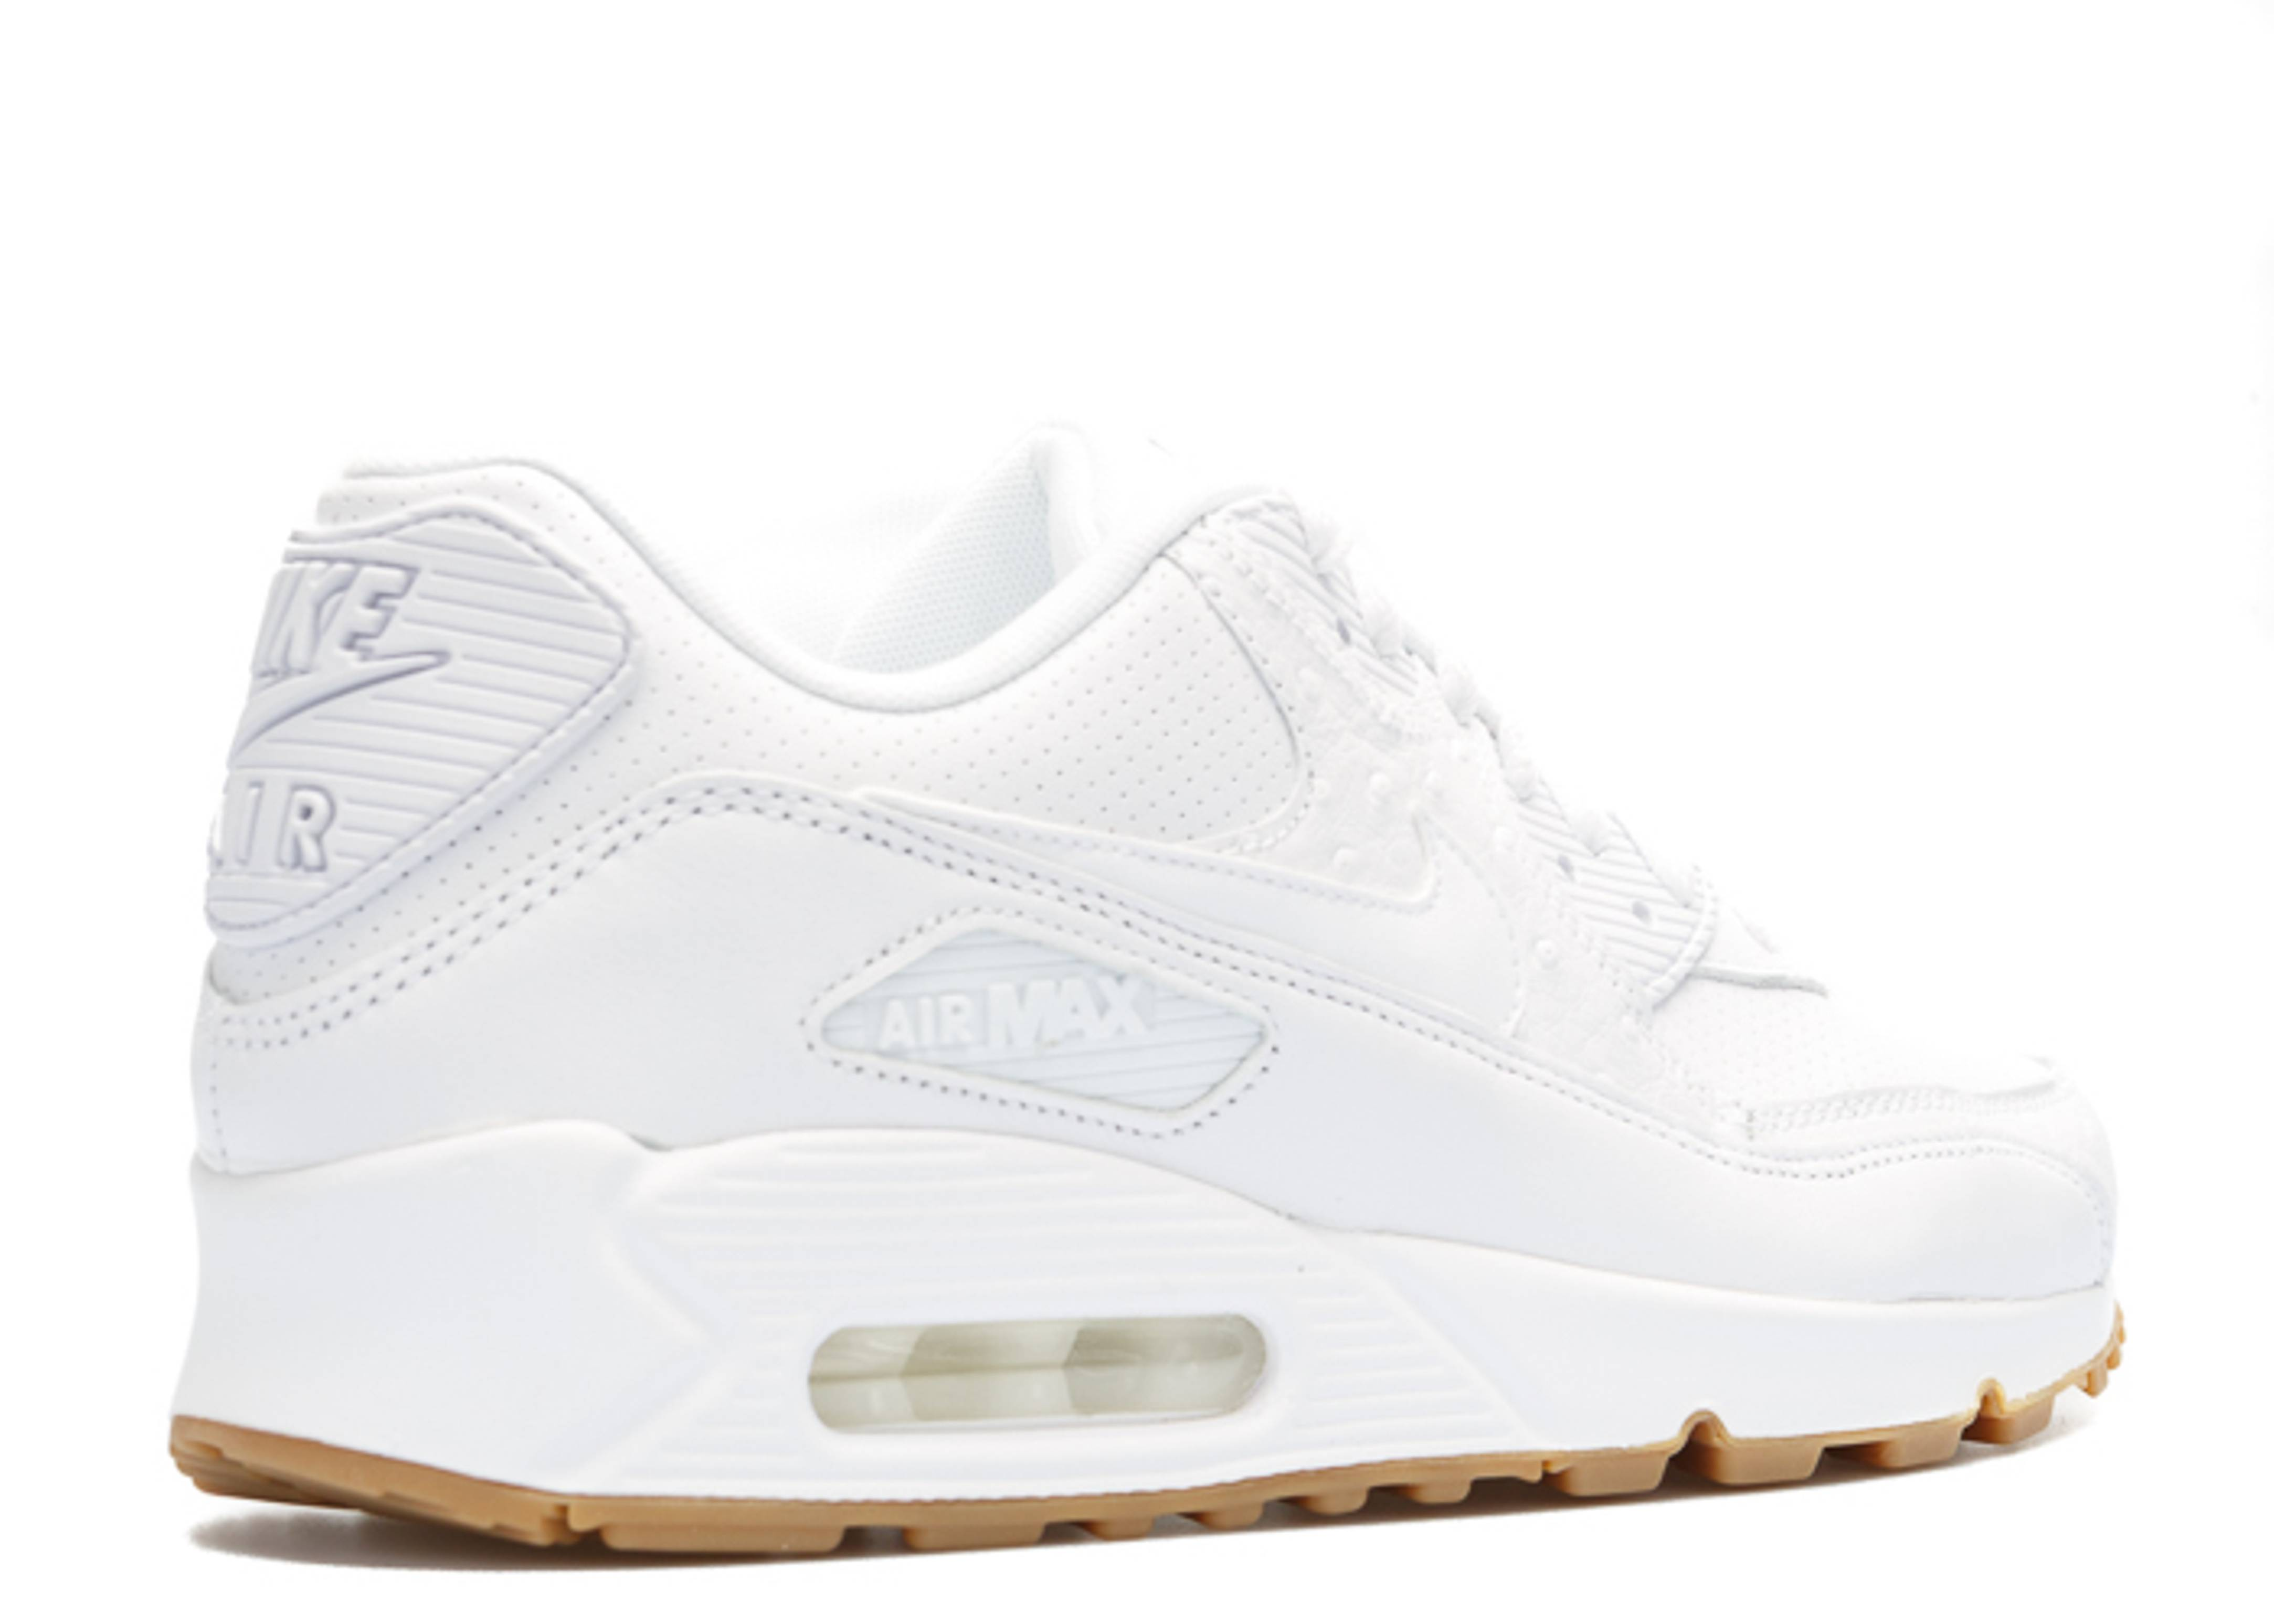 best authentic 68011 39103 ... 705012 111 d1 8edf2 225c7  promo code for air max 90 leather pa white  white gum light brown ae5d9 de987